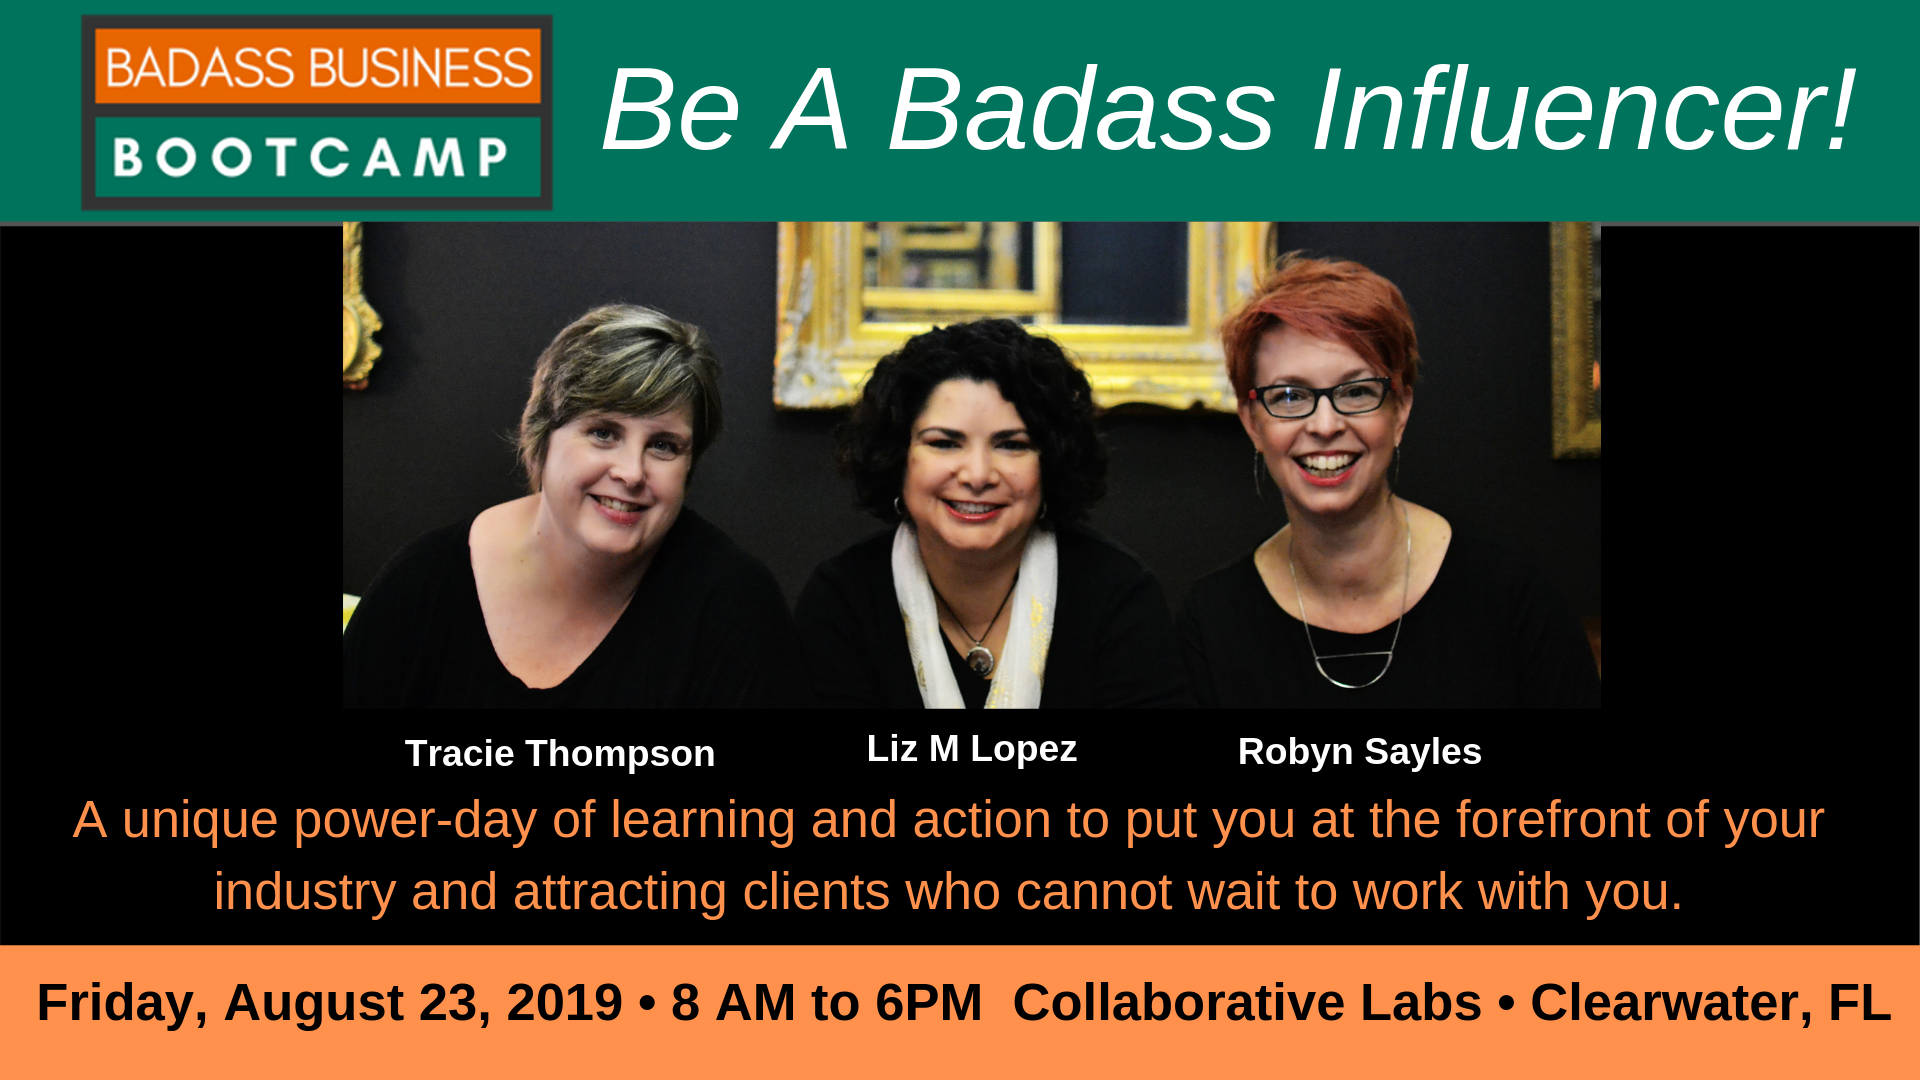 Badass Business Bootcamp - Be a Badass Influencer @ Collaborative Labs | Clearwater | Florida | United States